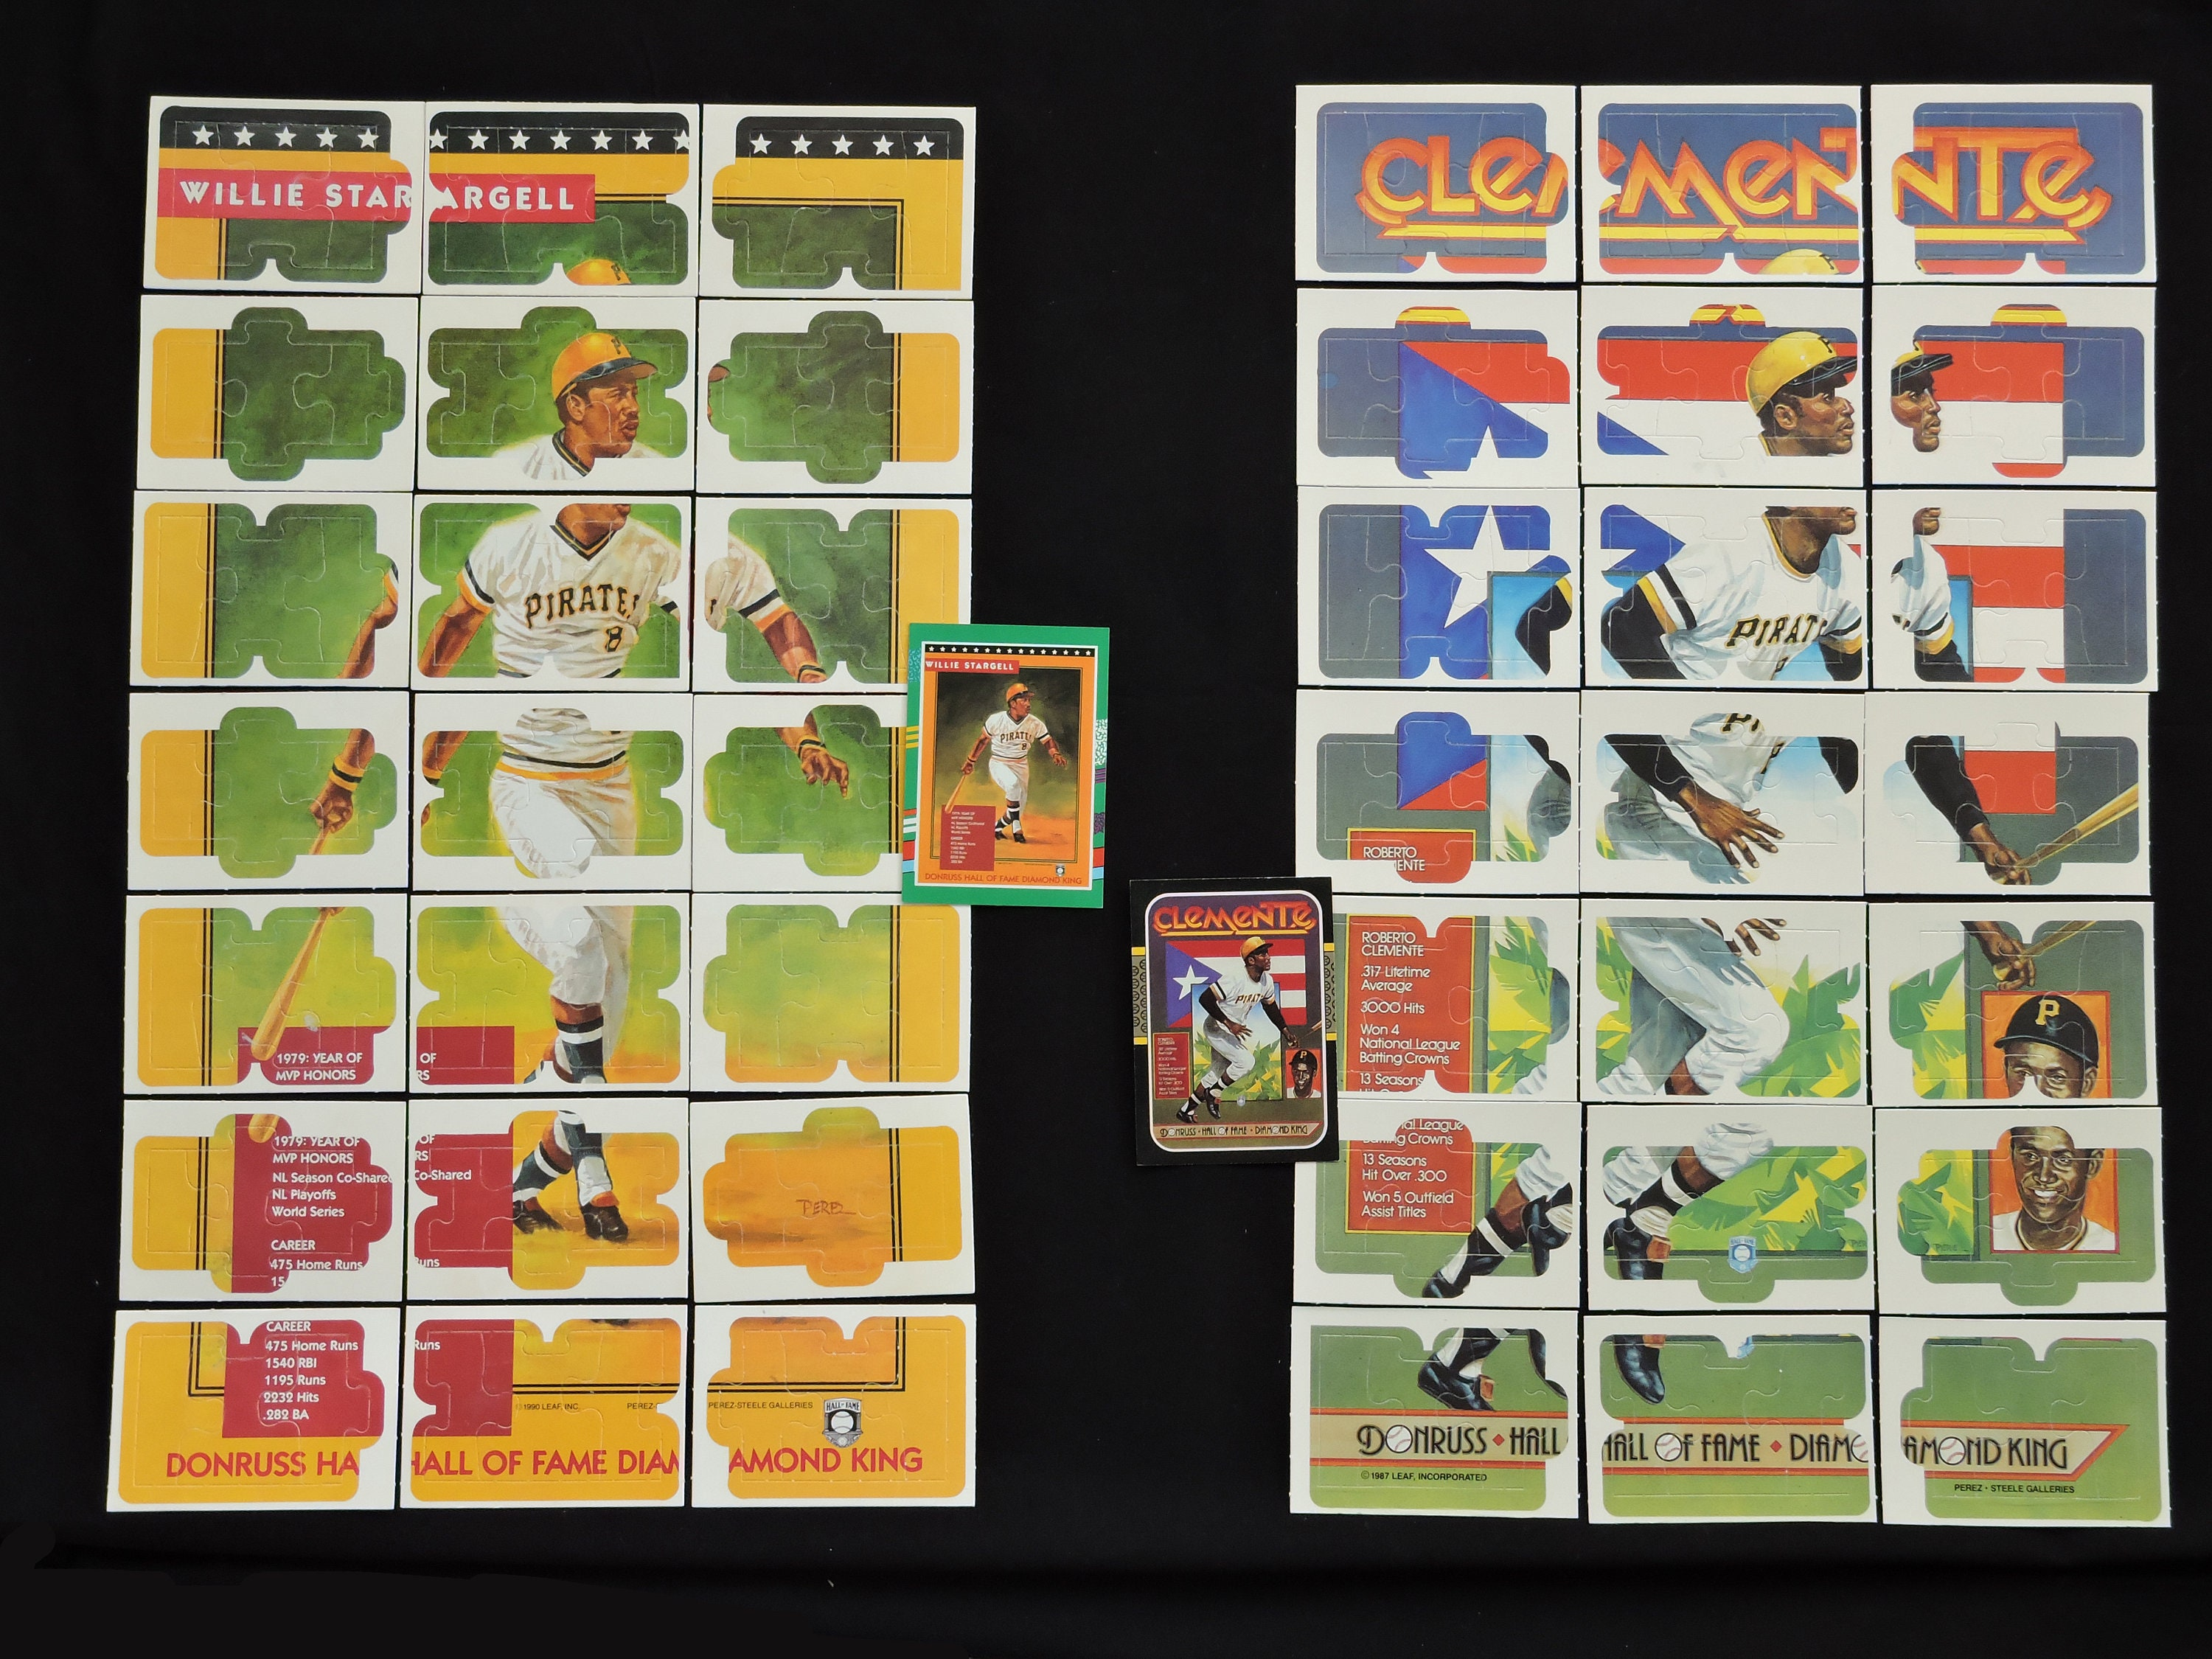 Vintage Roberto Clemente Willie Stargell Complete Baseball Puzzles 1980s 1990s Donruss Baseball Cards Puzzle Sets Pittsburgh Pirates